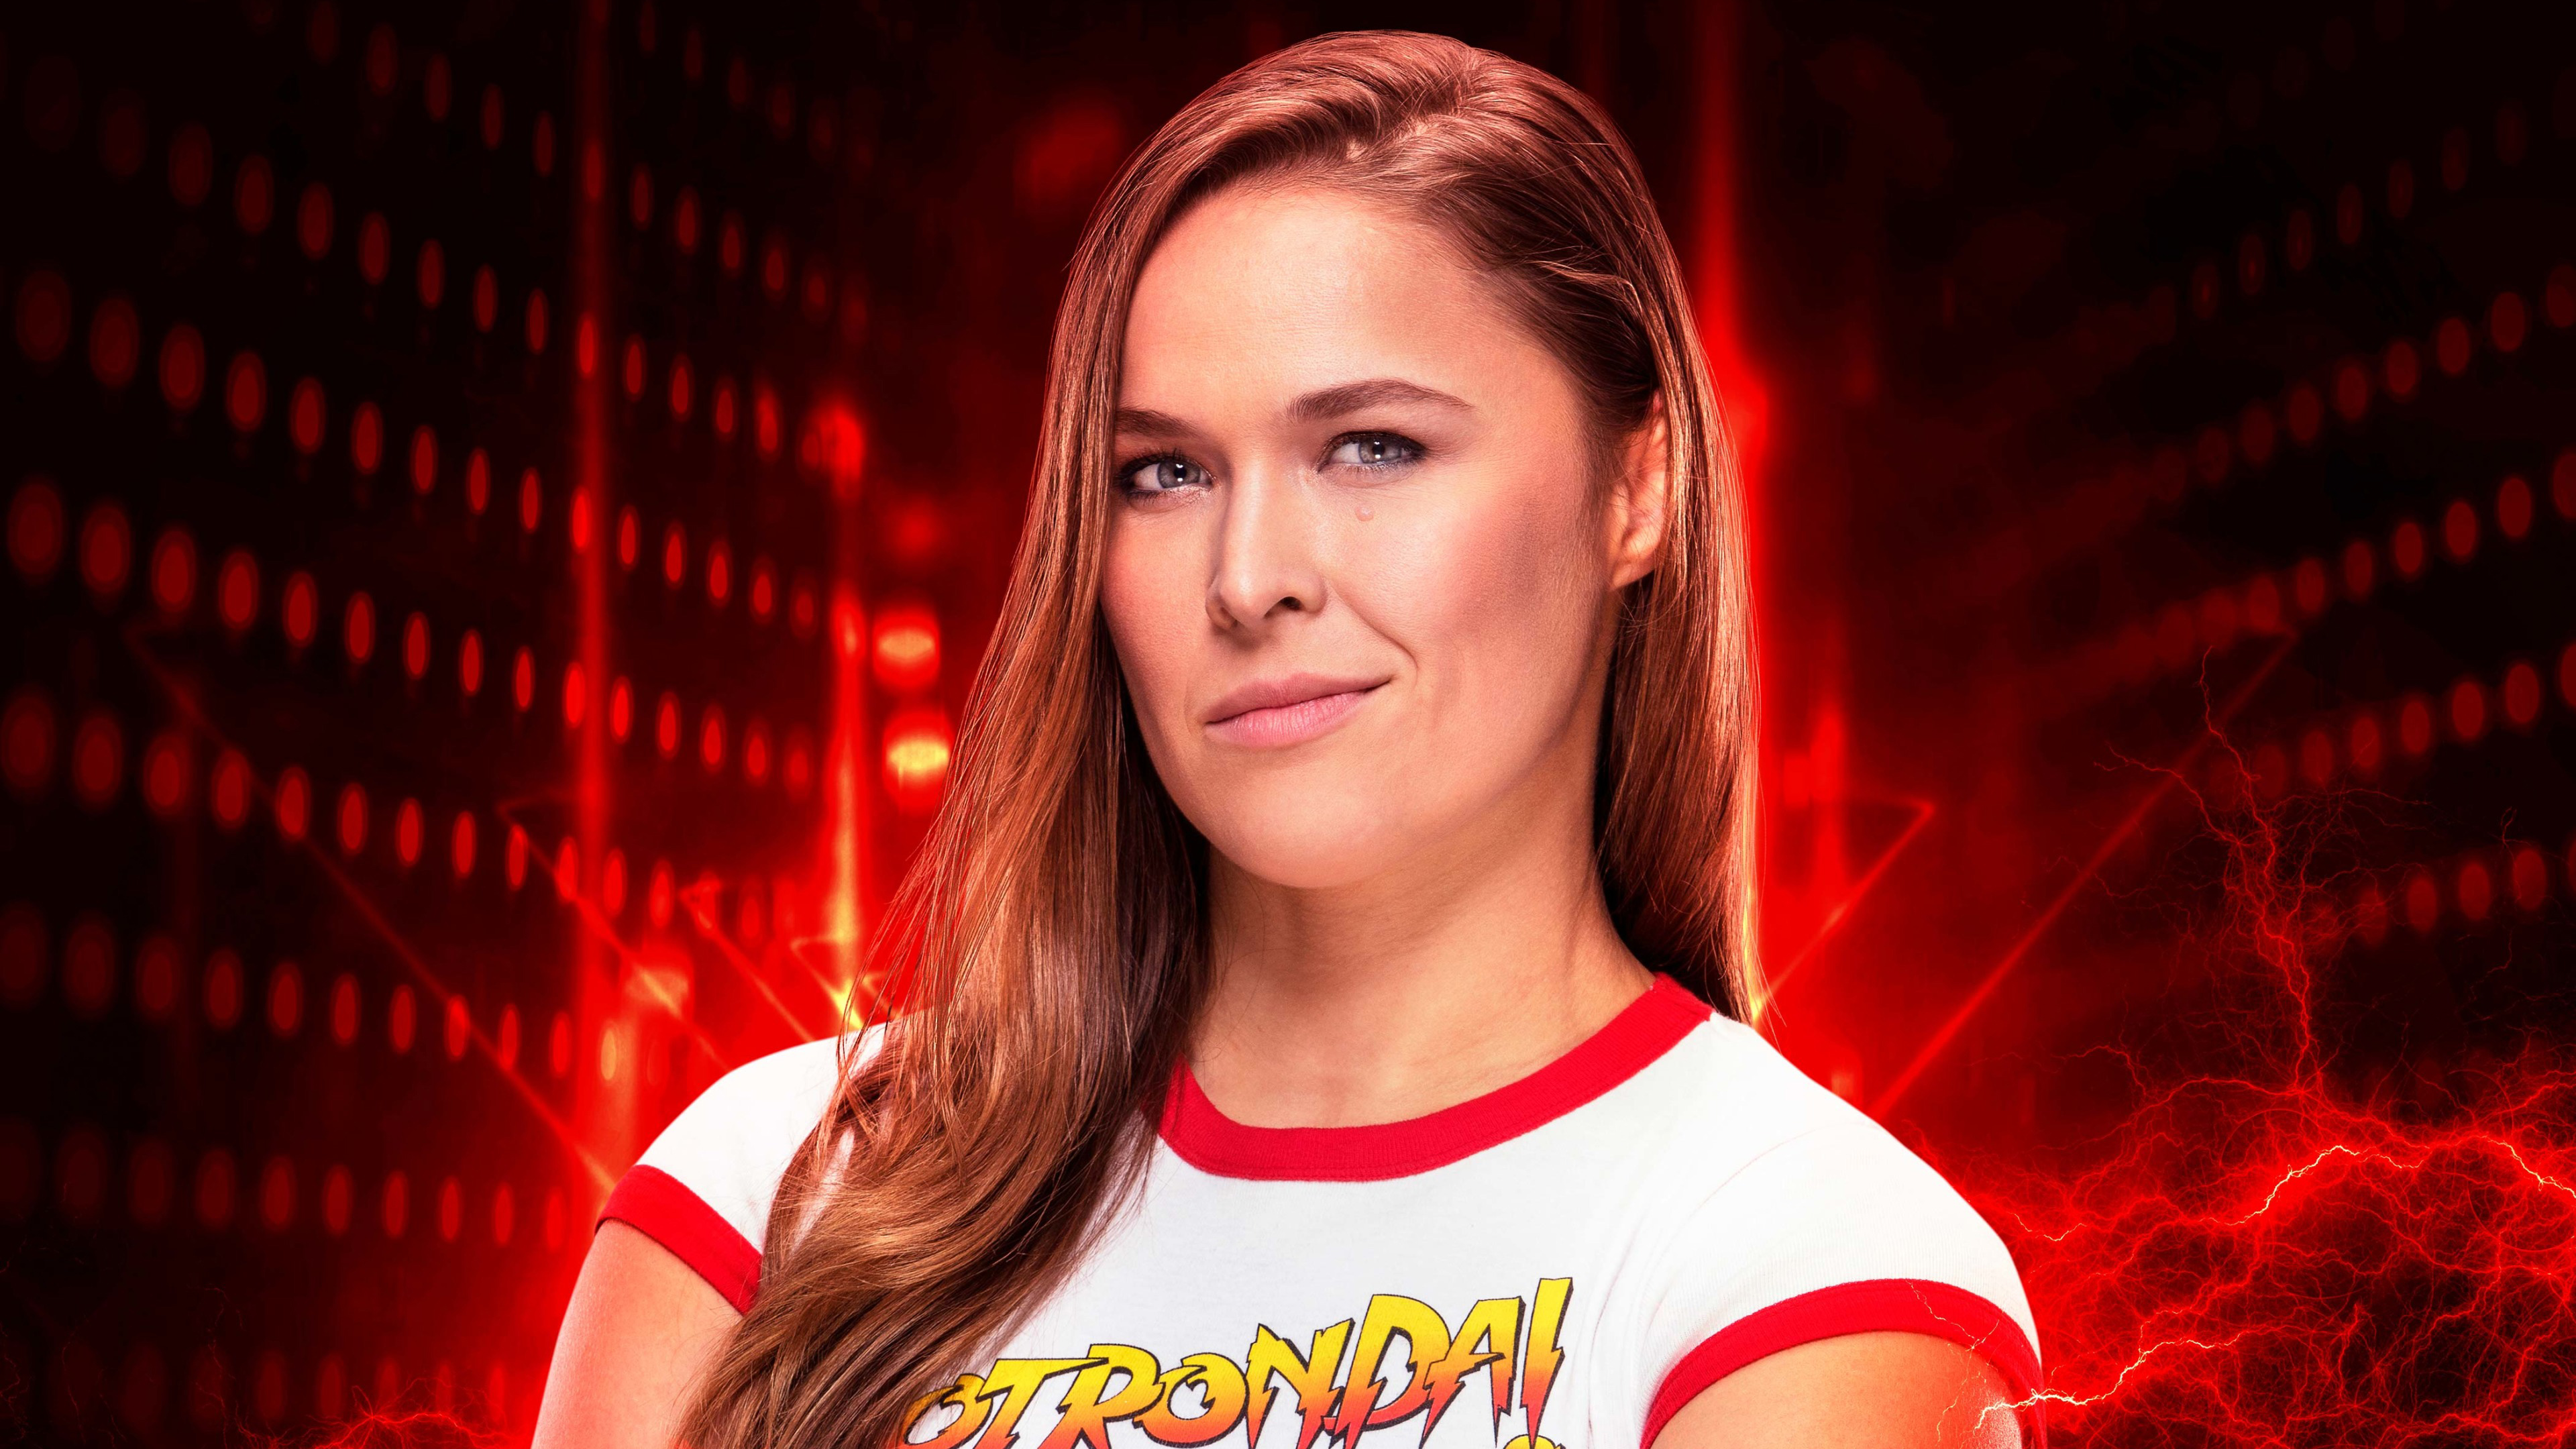 Ronda Rousey WWE 2K19, HD Games, 4k Wallpapers, Images